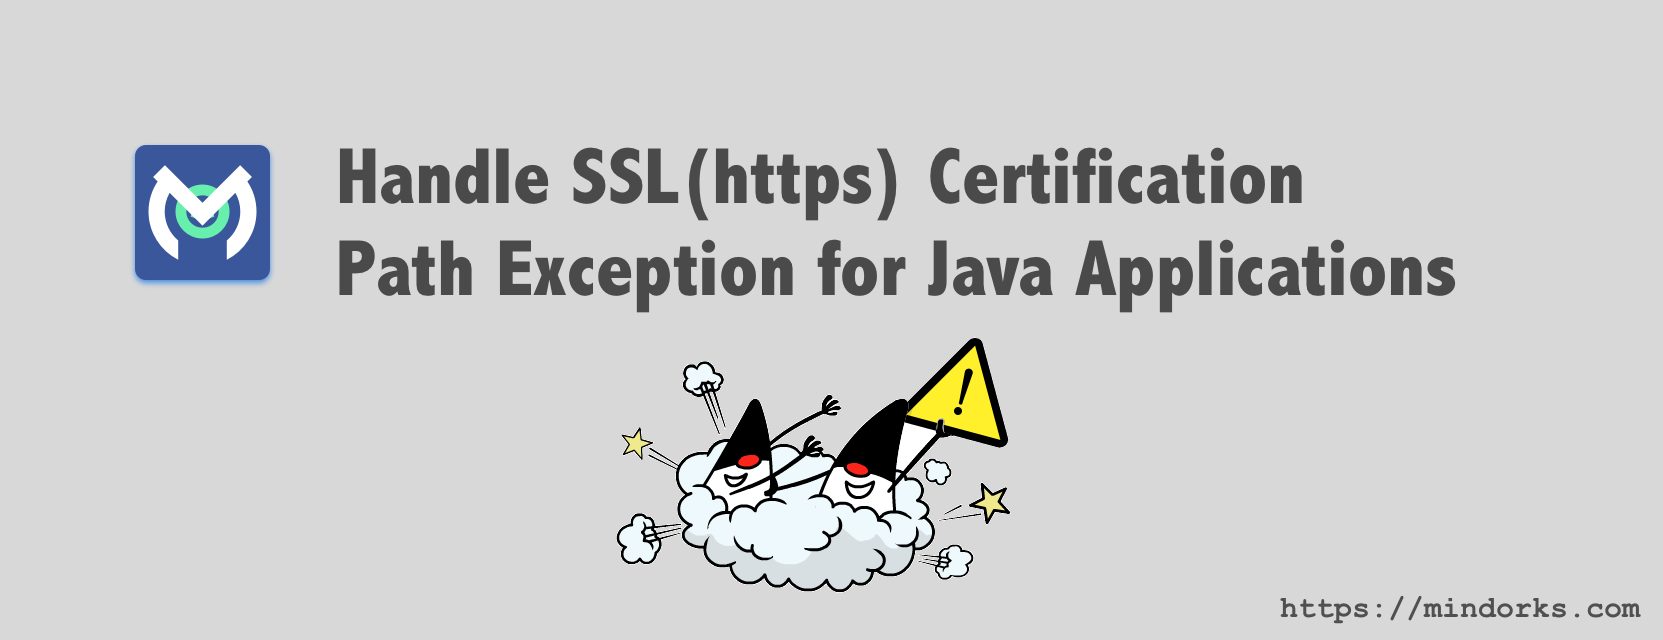 Handle SSL(Https) Certification Path Exception for Java